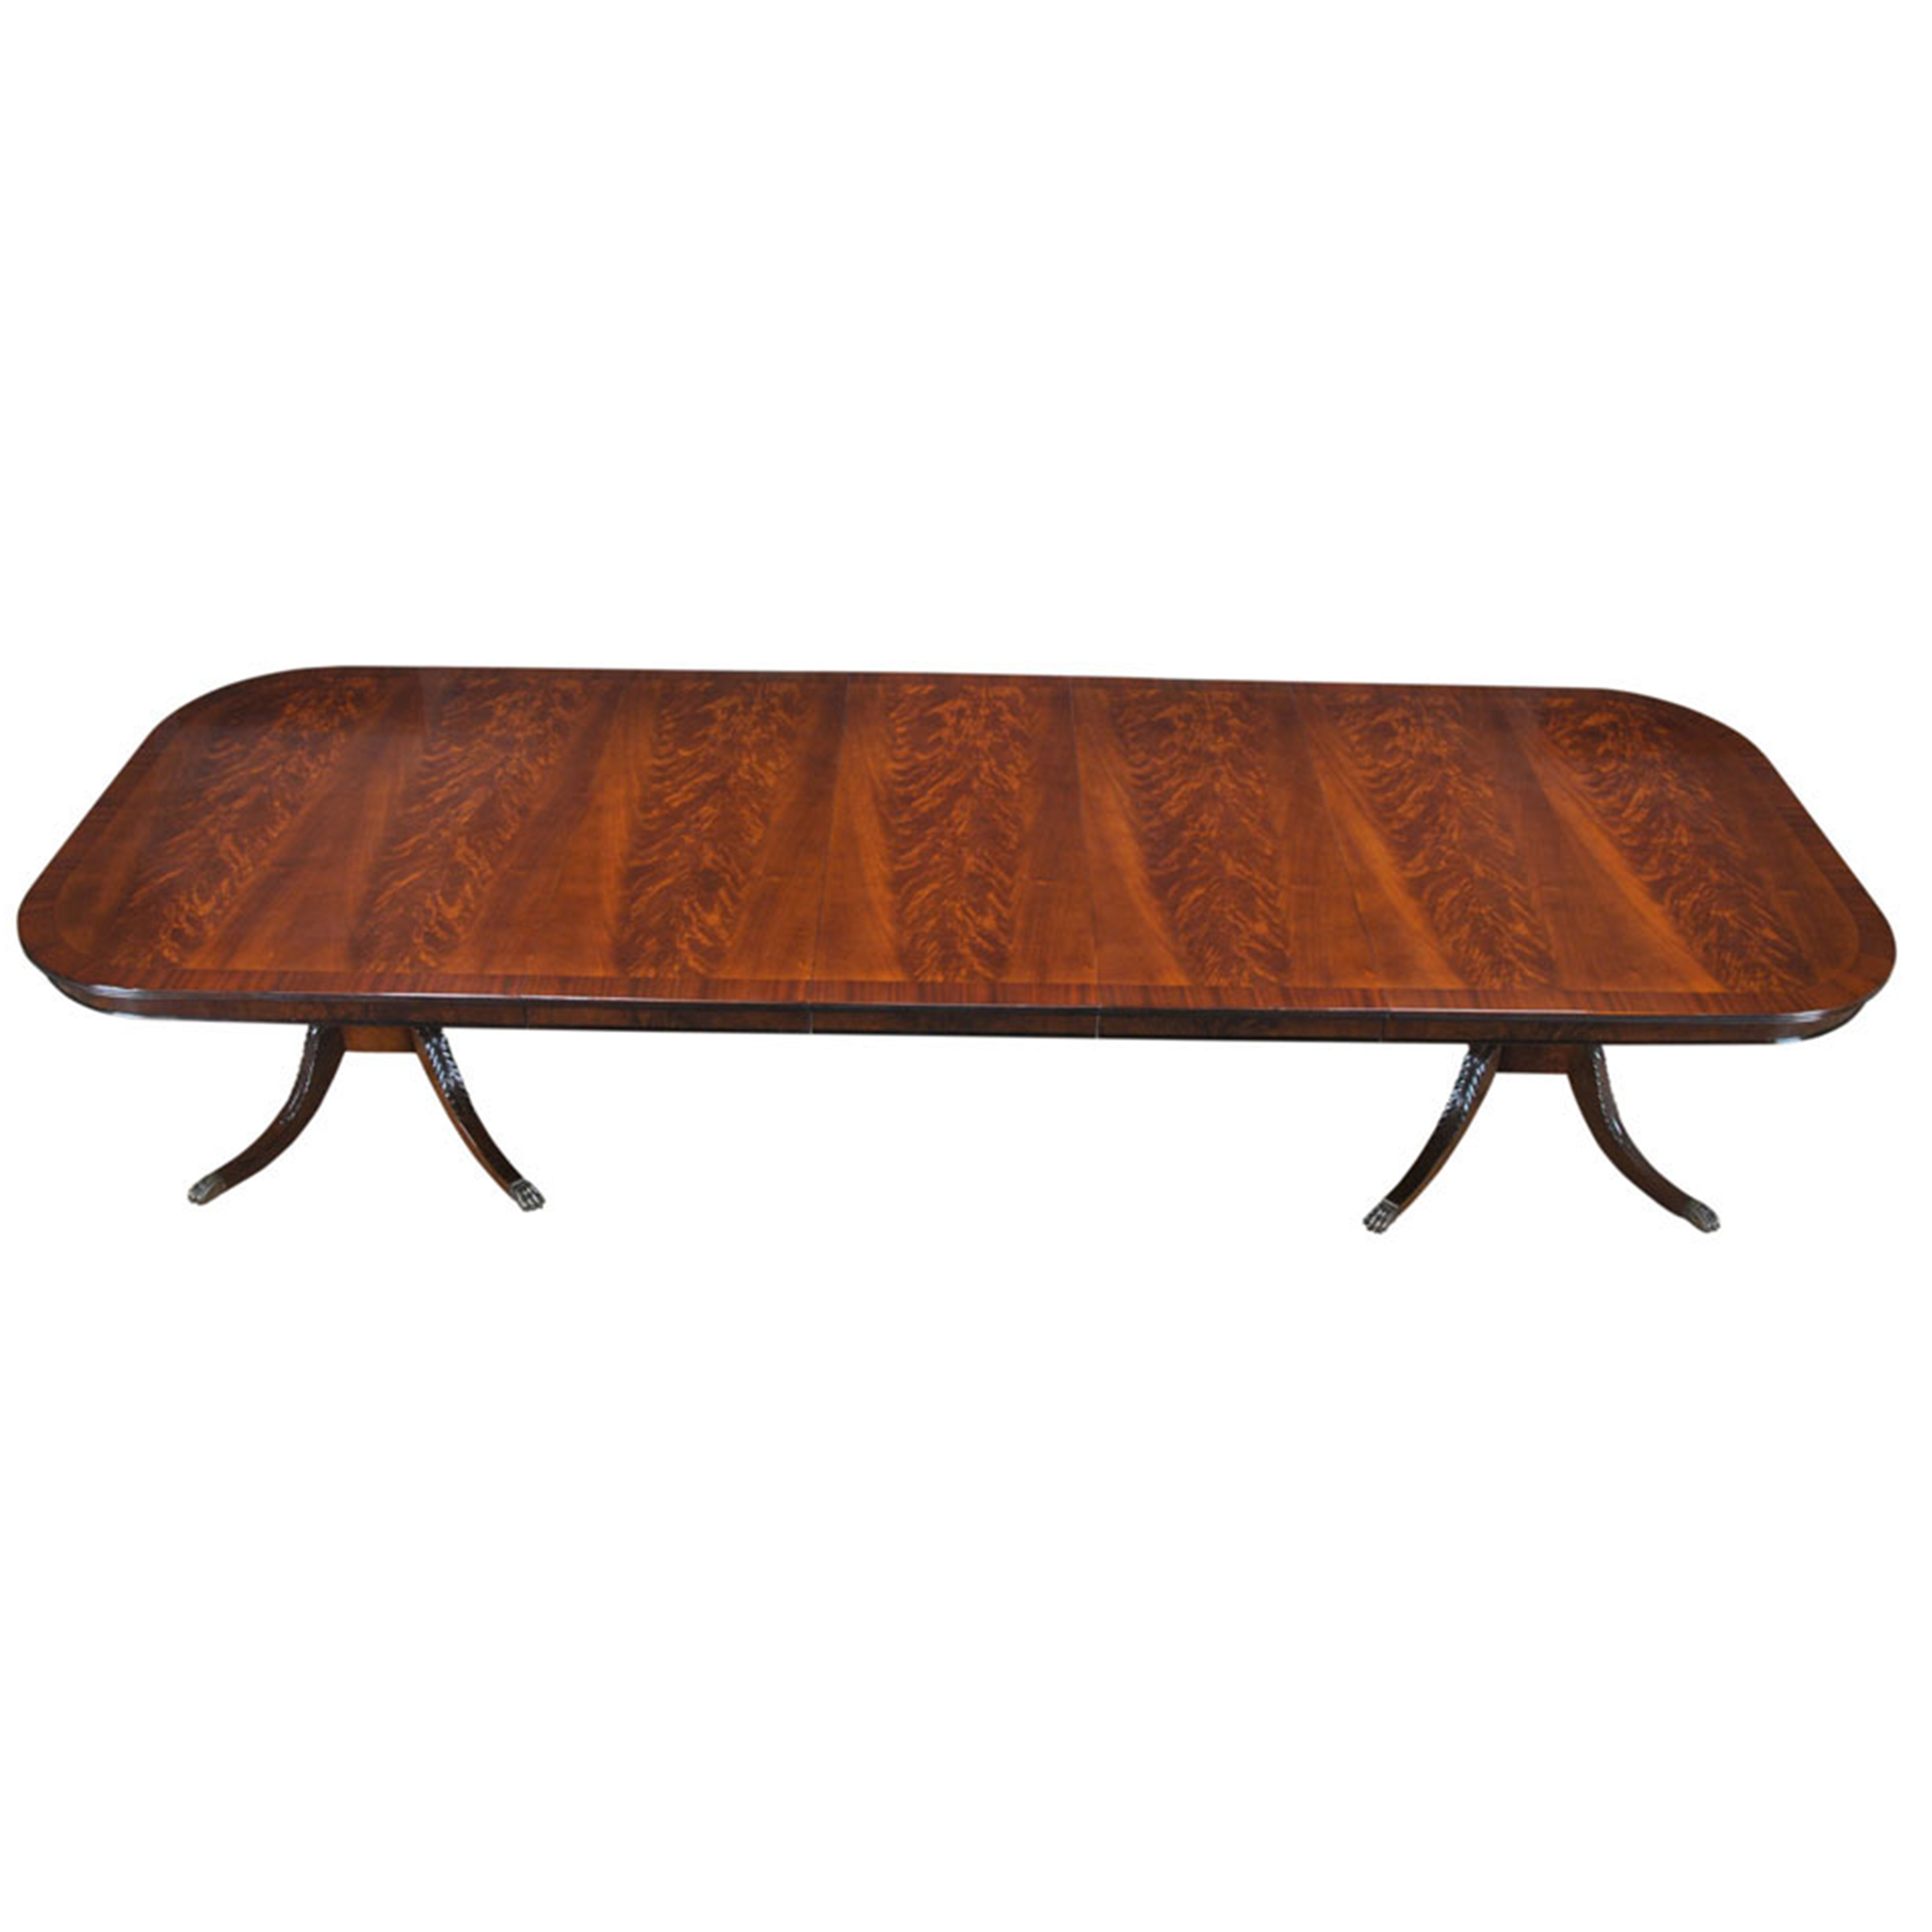 Long Harp Base Dining Table, Niagara Furniture, mahogany table